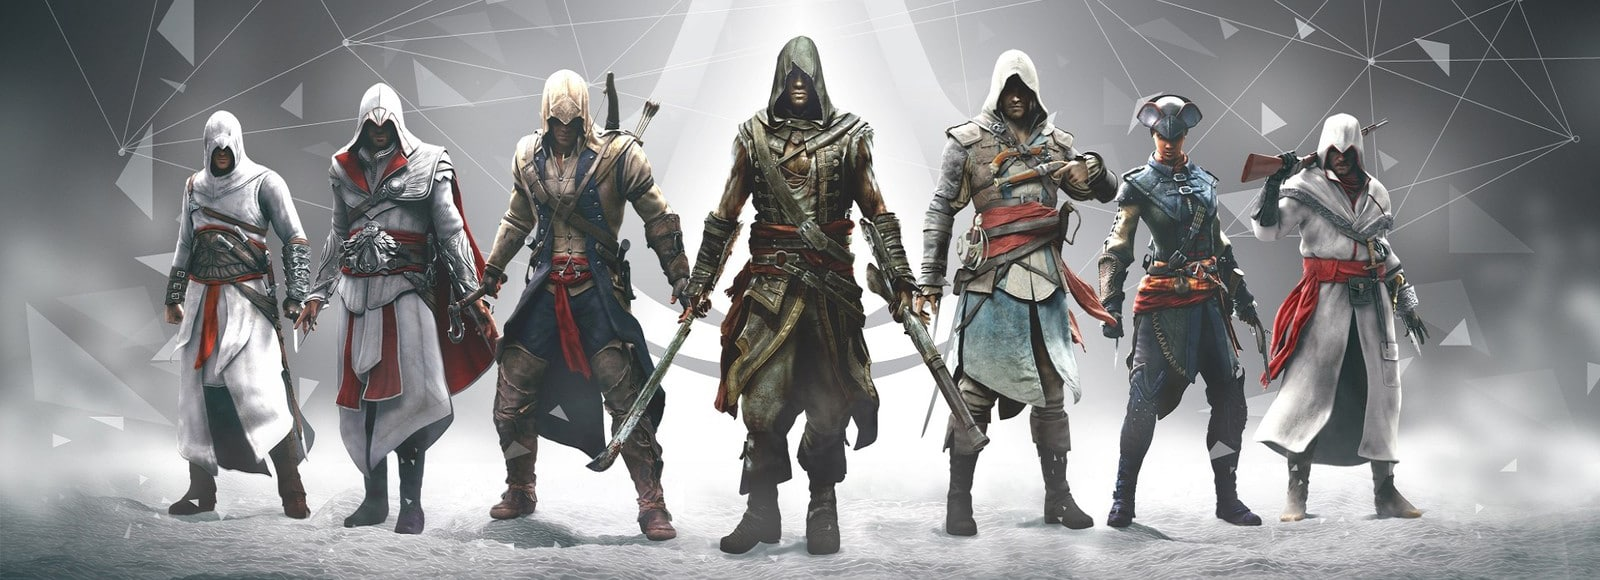 Assassin's Creed Mobile Launch